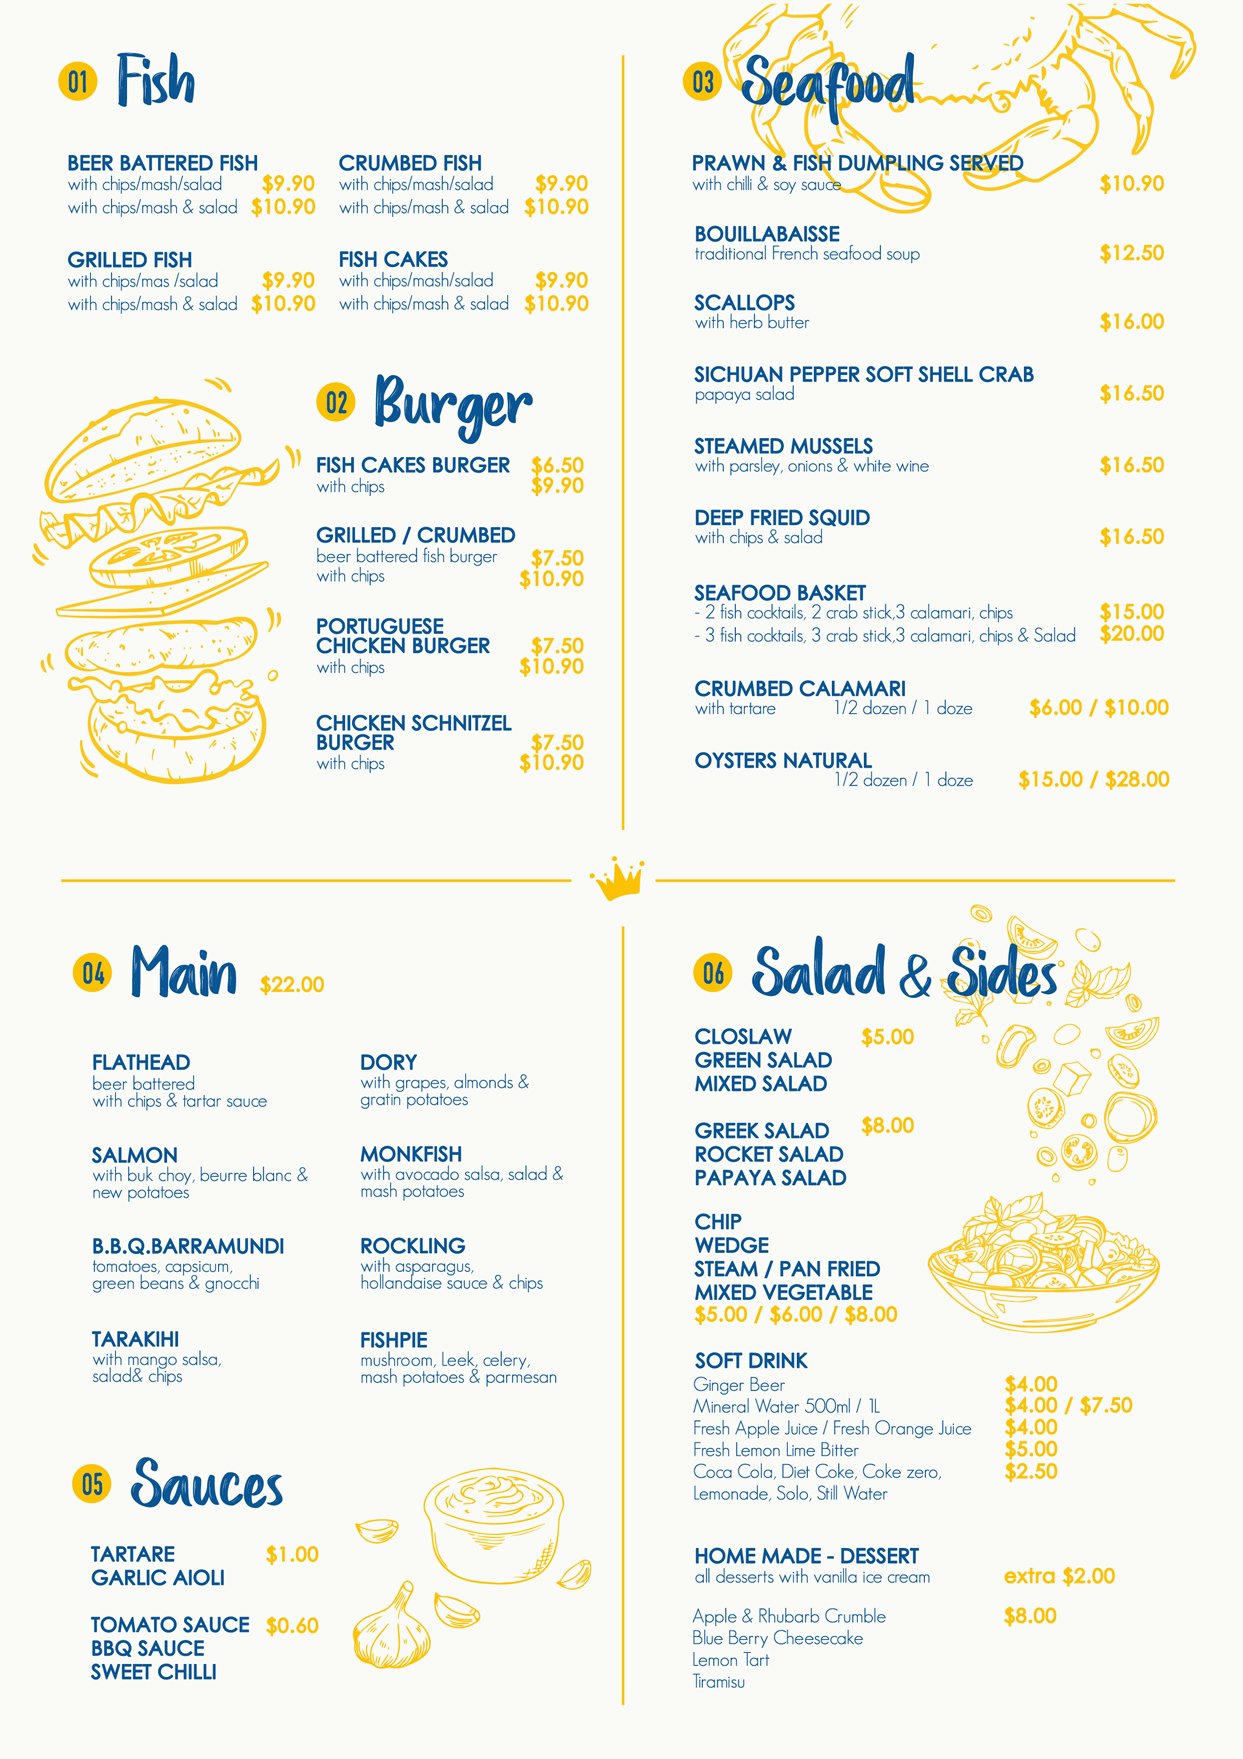 Click to enlarge the menu.